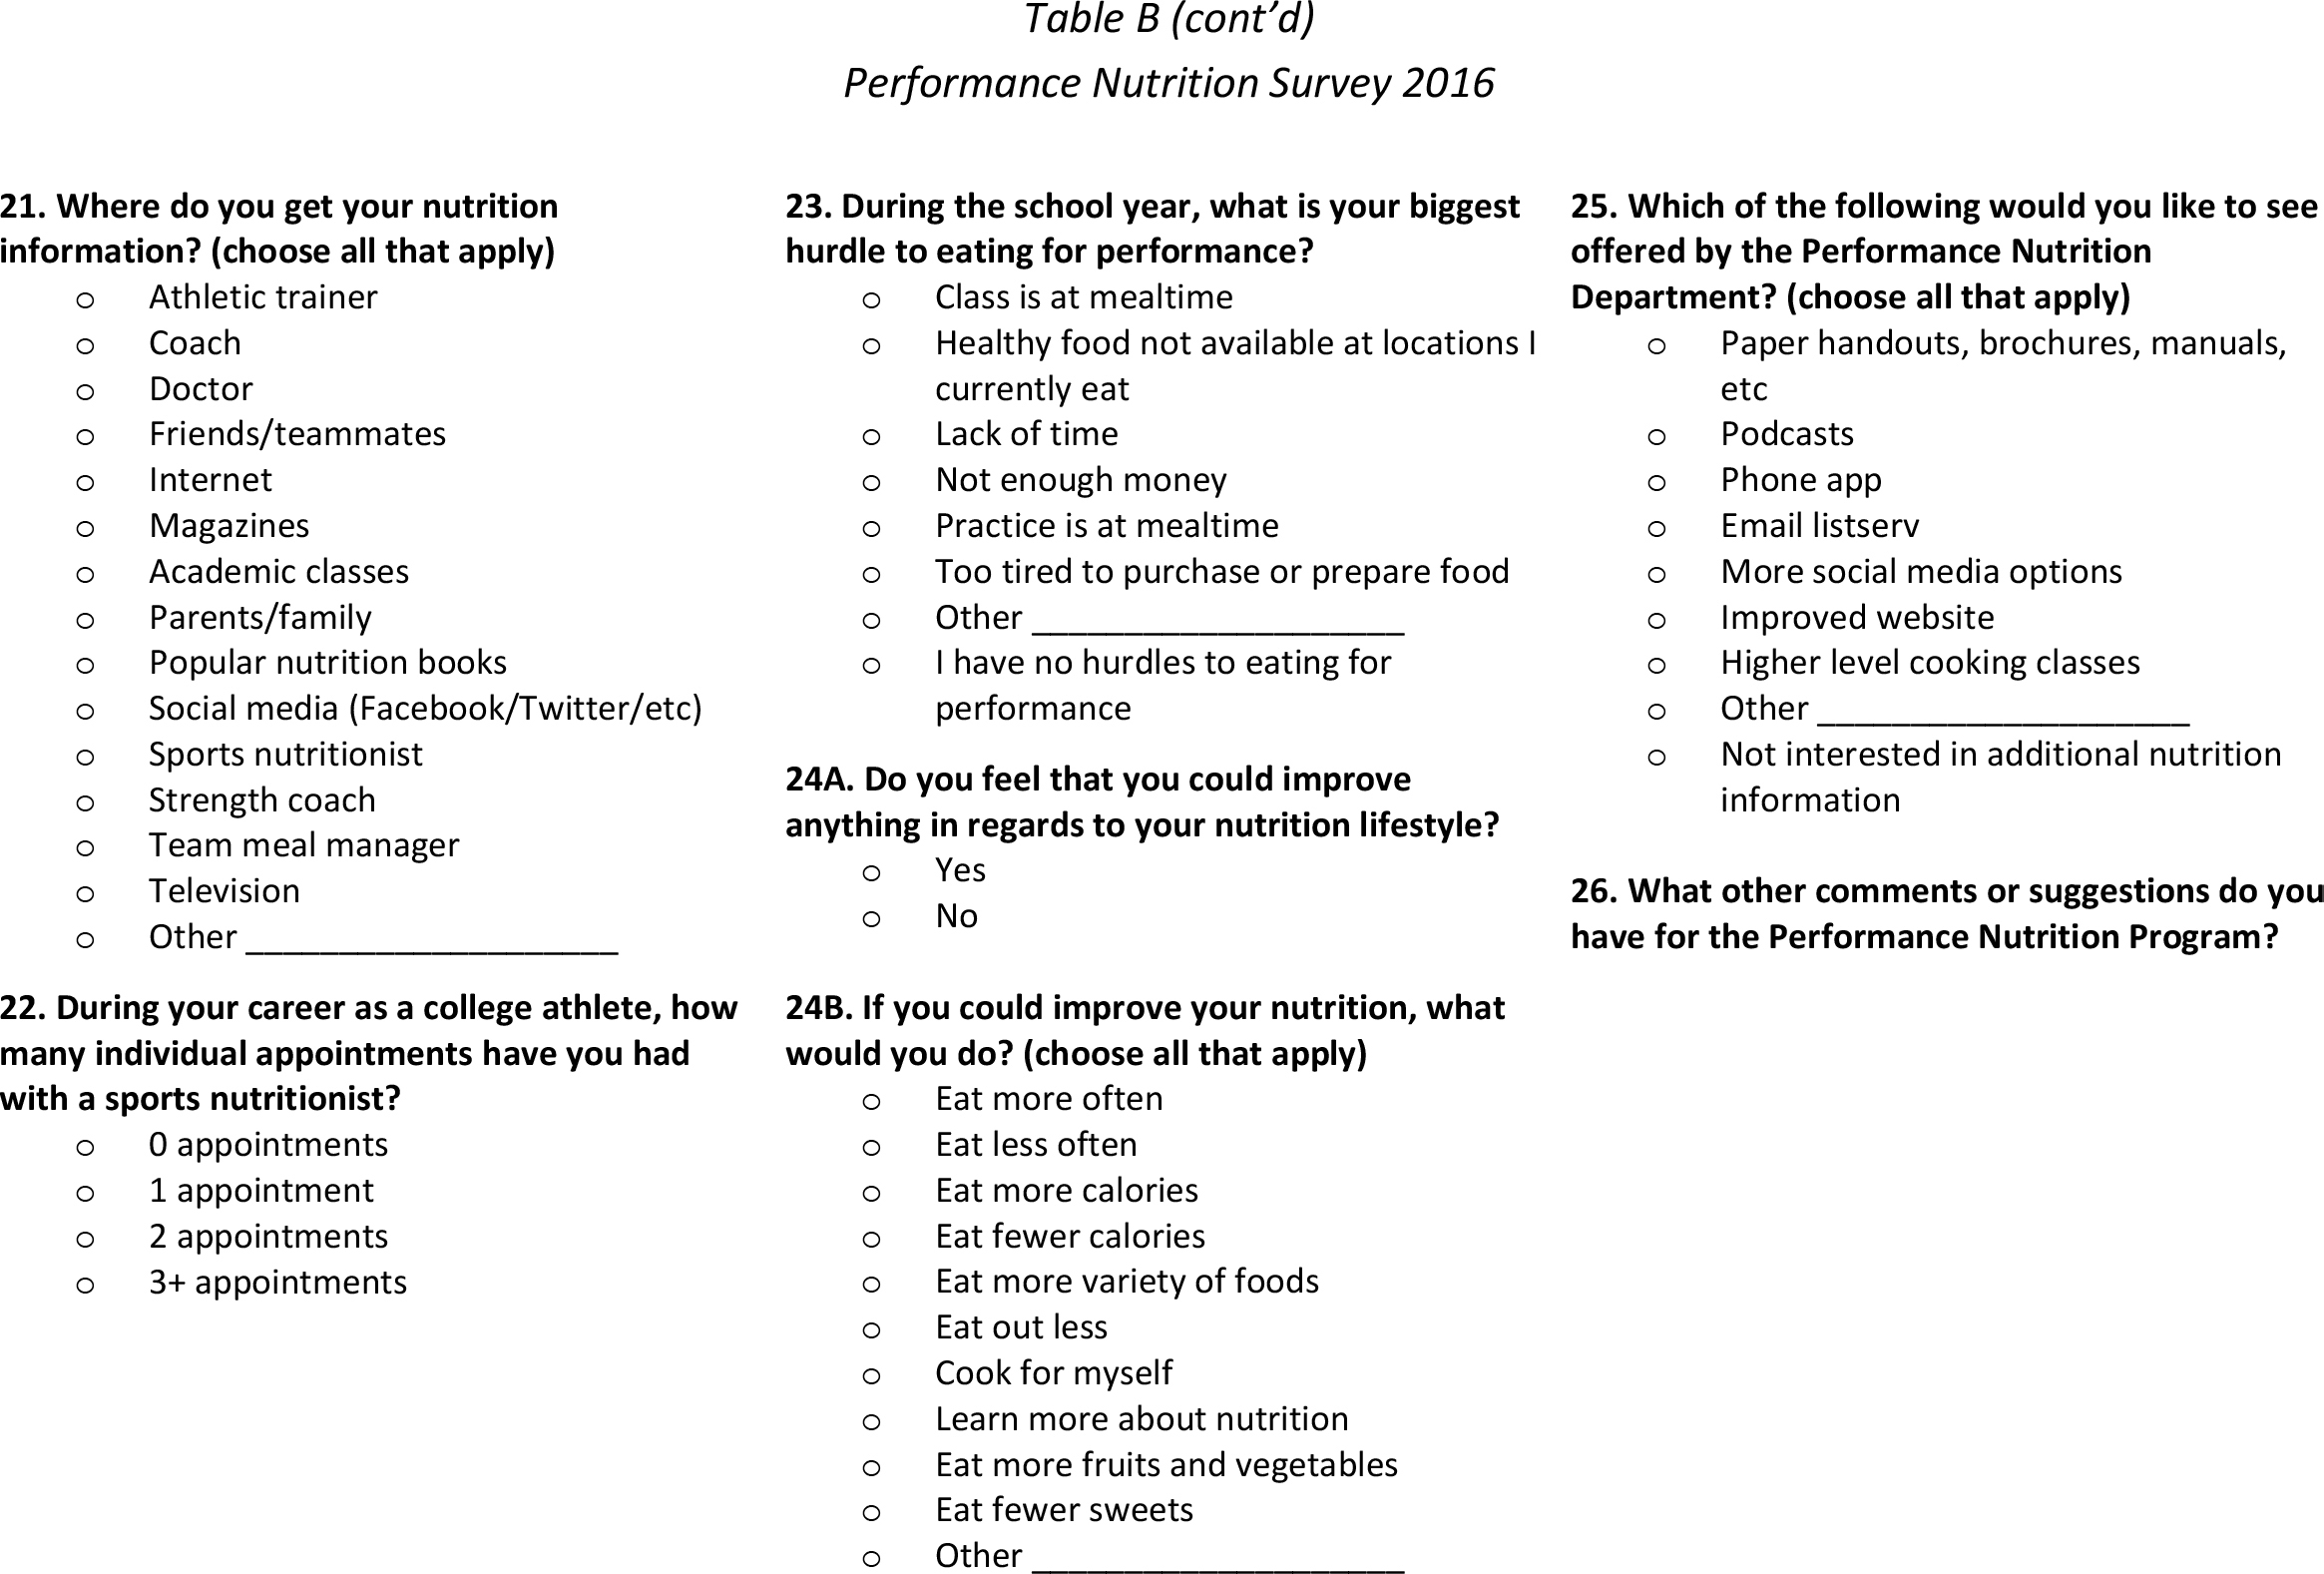 Eating behaviors and nutrition challenges of collegiate athletes performance nutrition survey 2016the performance nutrition program exists to provide you with food and nutrition information 1betcityfo Choice Image